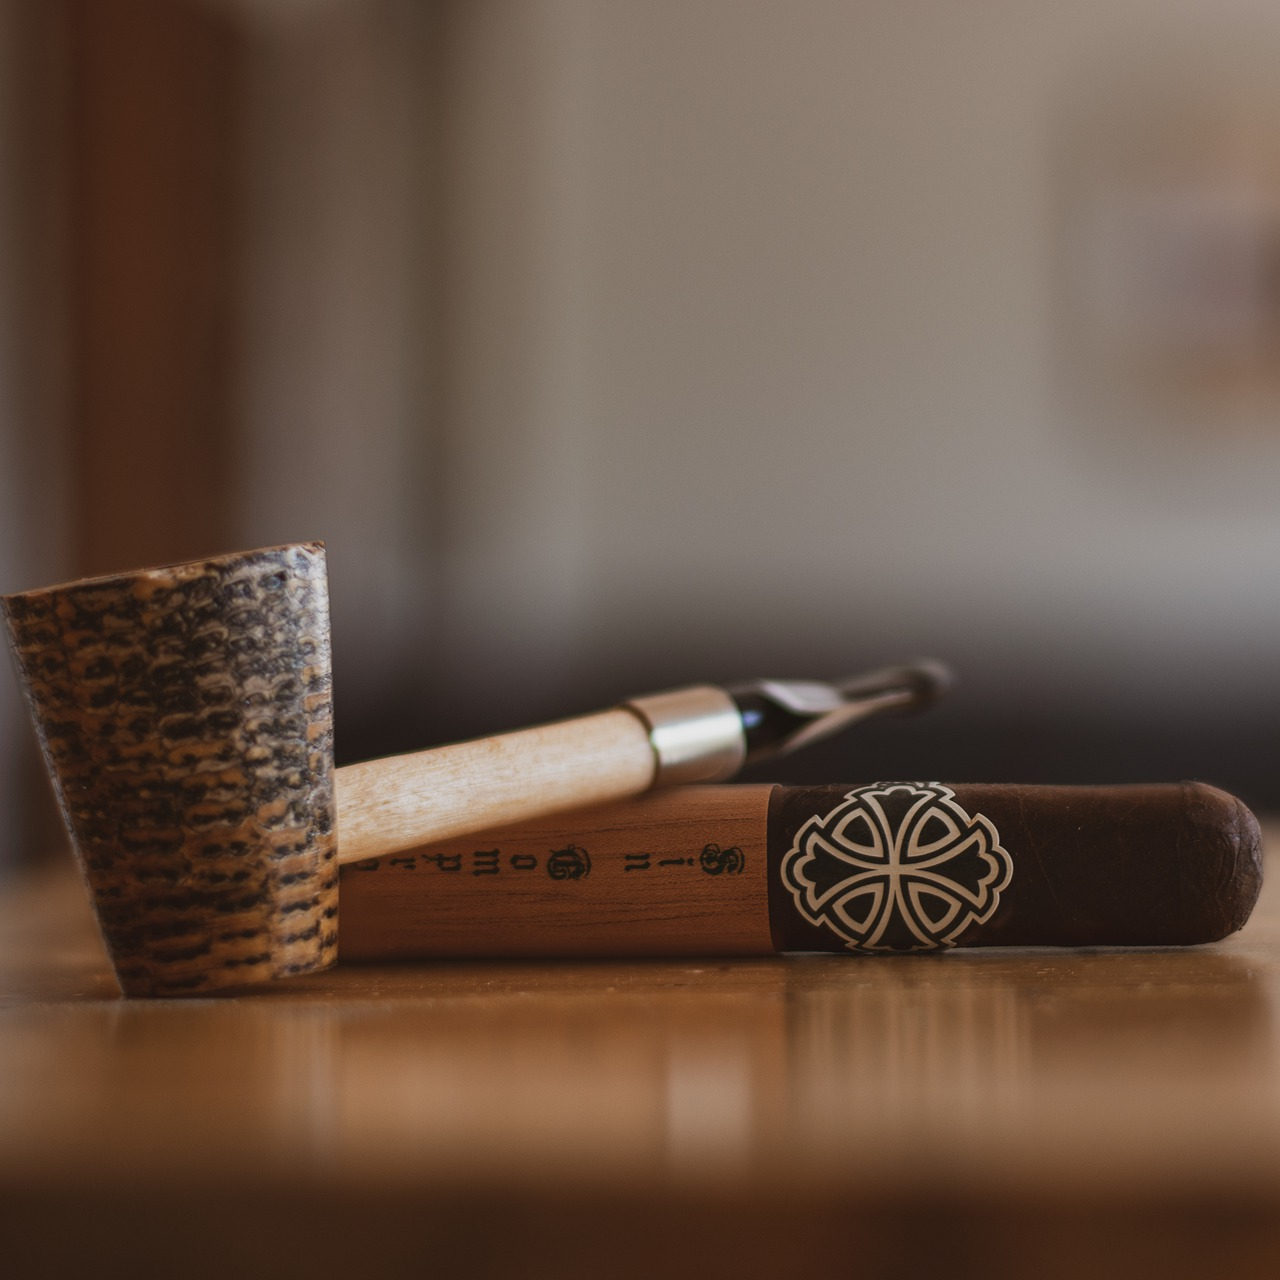 A smoking pipe resting on a cigar